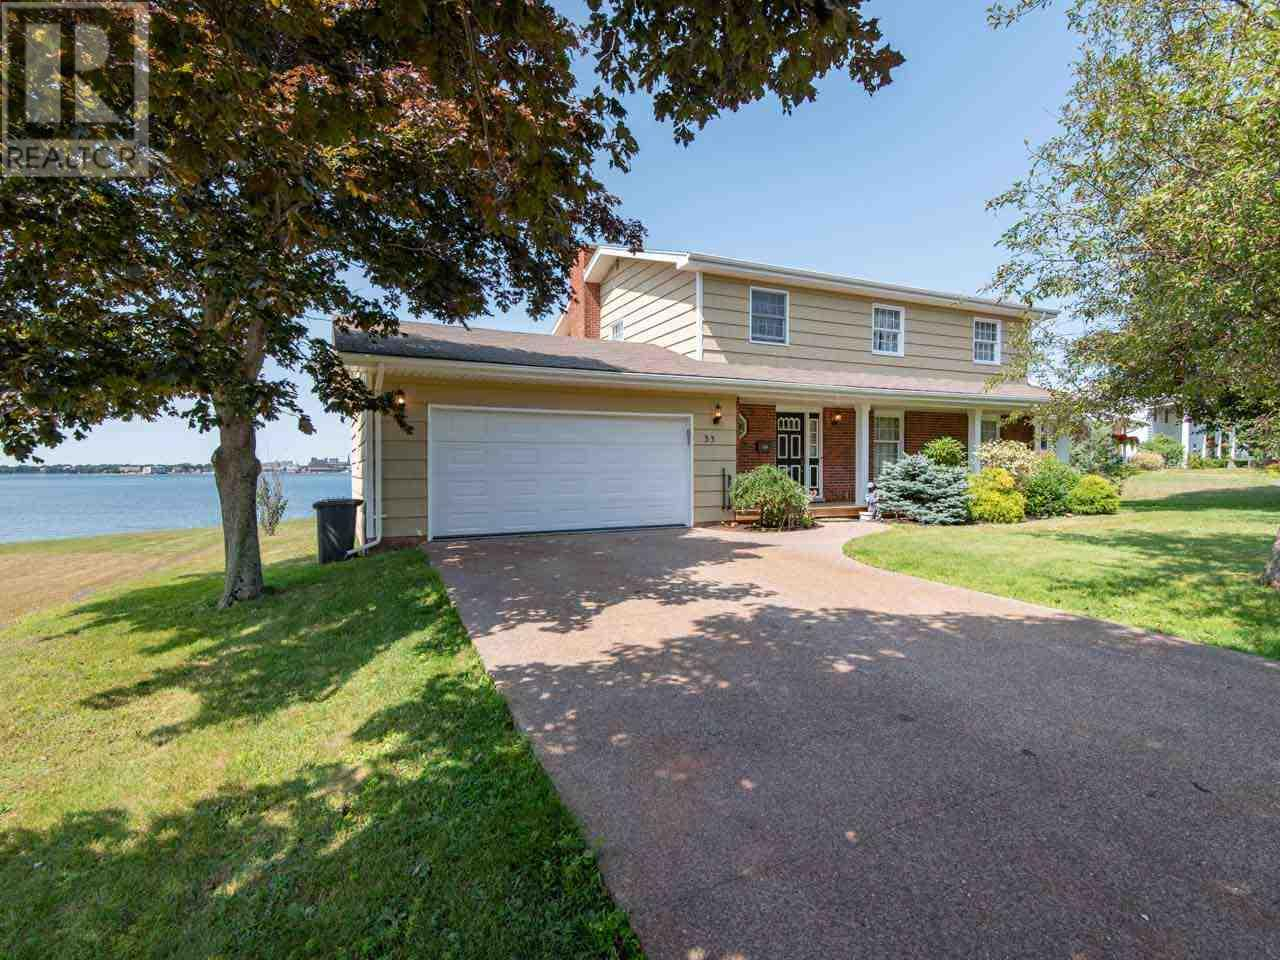 Removed: 33 Glencove Drive, Stratford, ON - Removed on 2019-03-21 06:27:17